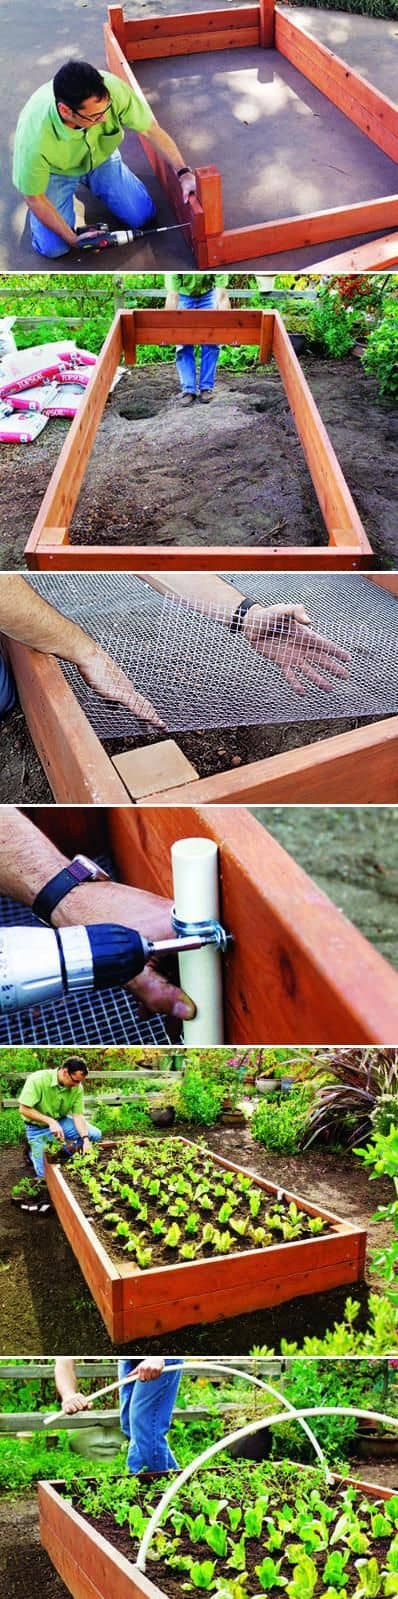 Raised Bed assemble | How to Build a Raised Vegetable Garden Bed | 39+ Simple & Cheap Raised Vegetable Garden Bed Ideas - farmfoodfamily.com